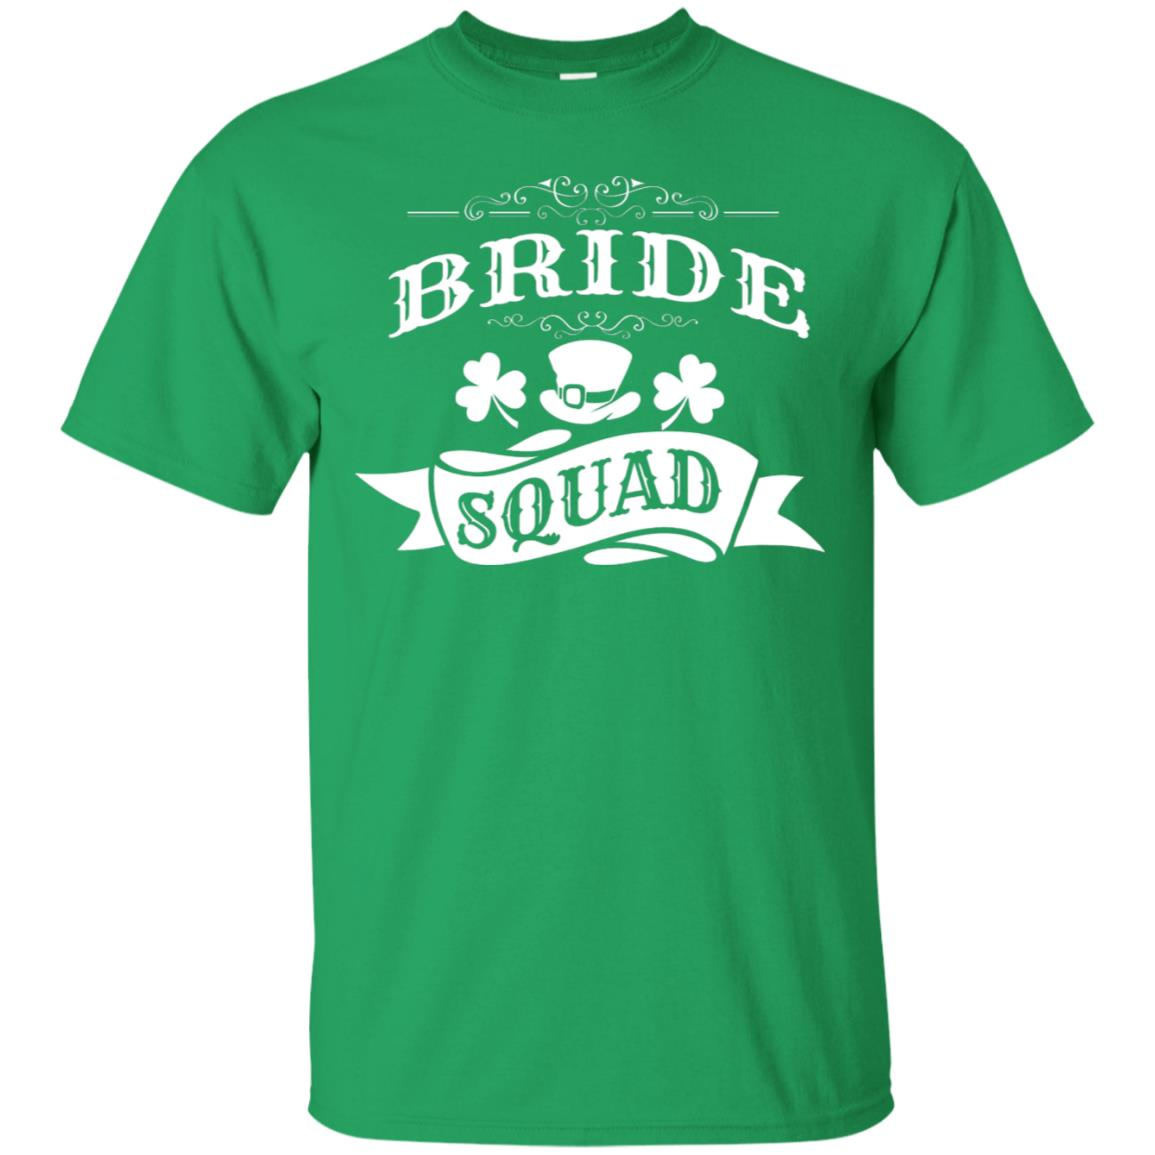 626f749a6 Awesome bride squad st patrick's day bachelorette party t shirt ...